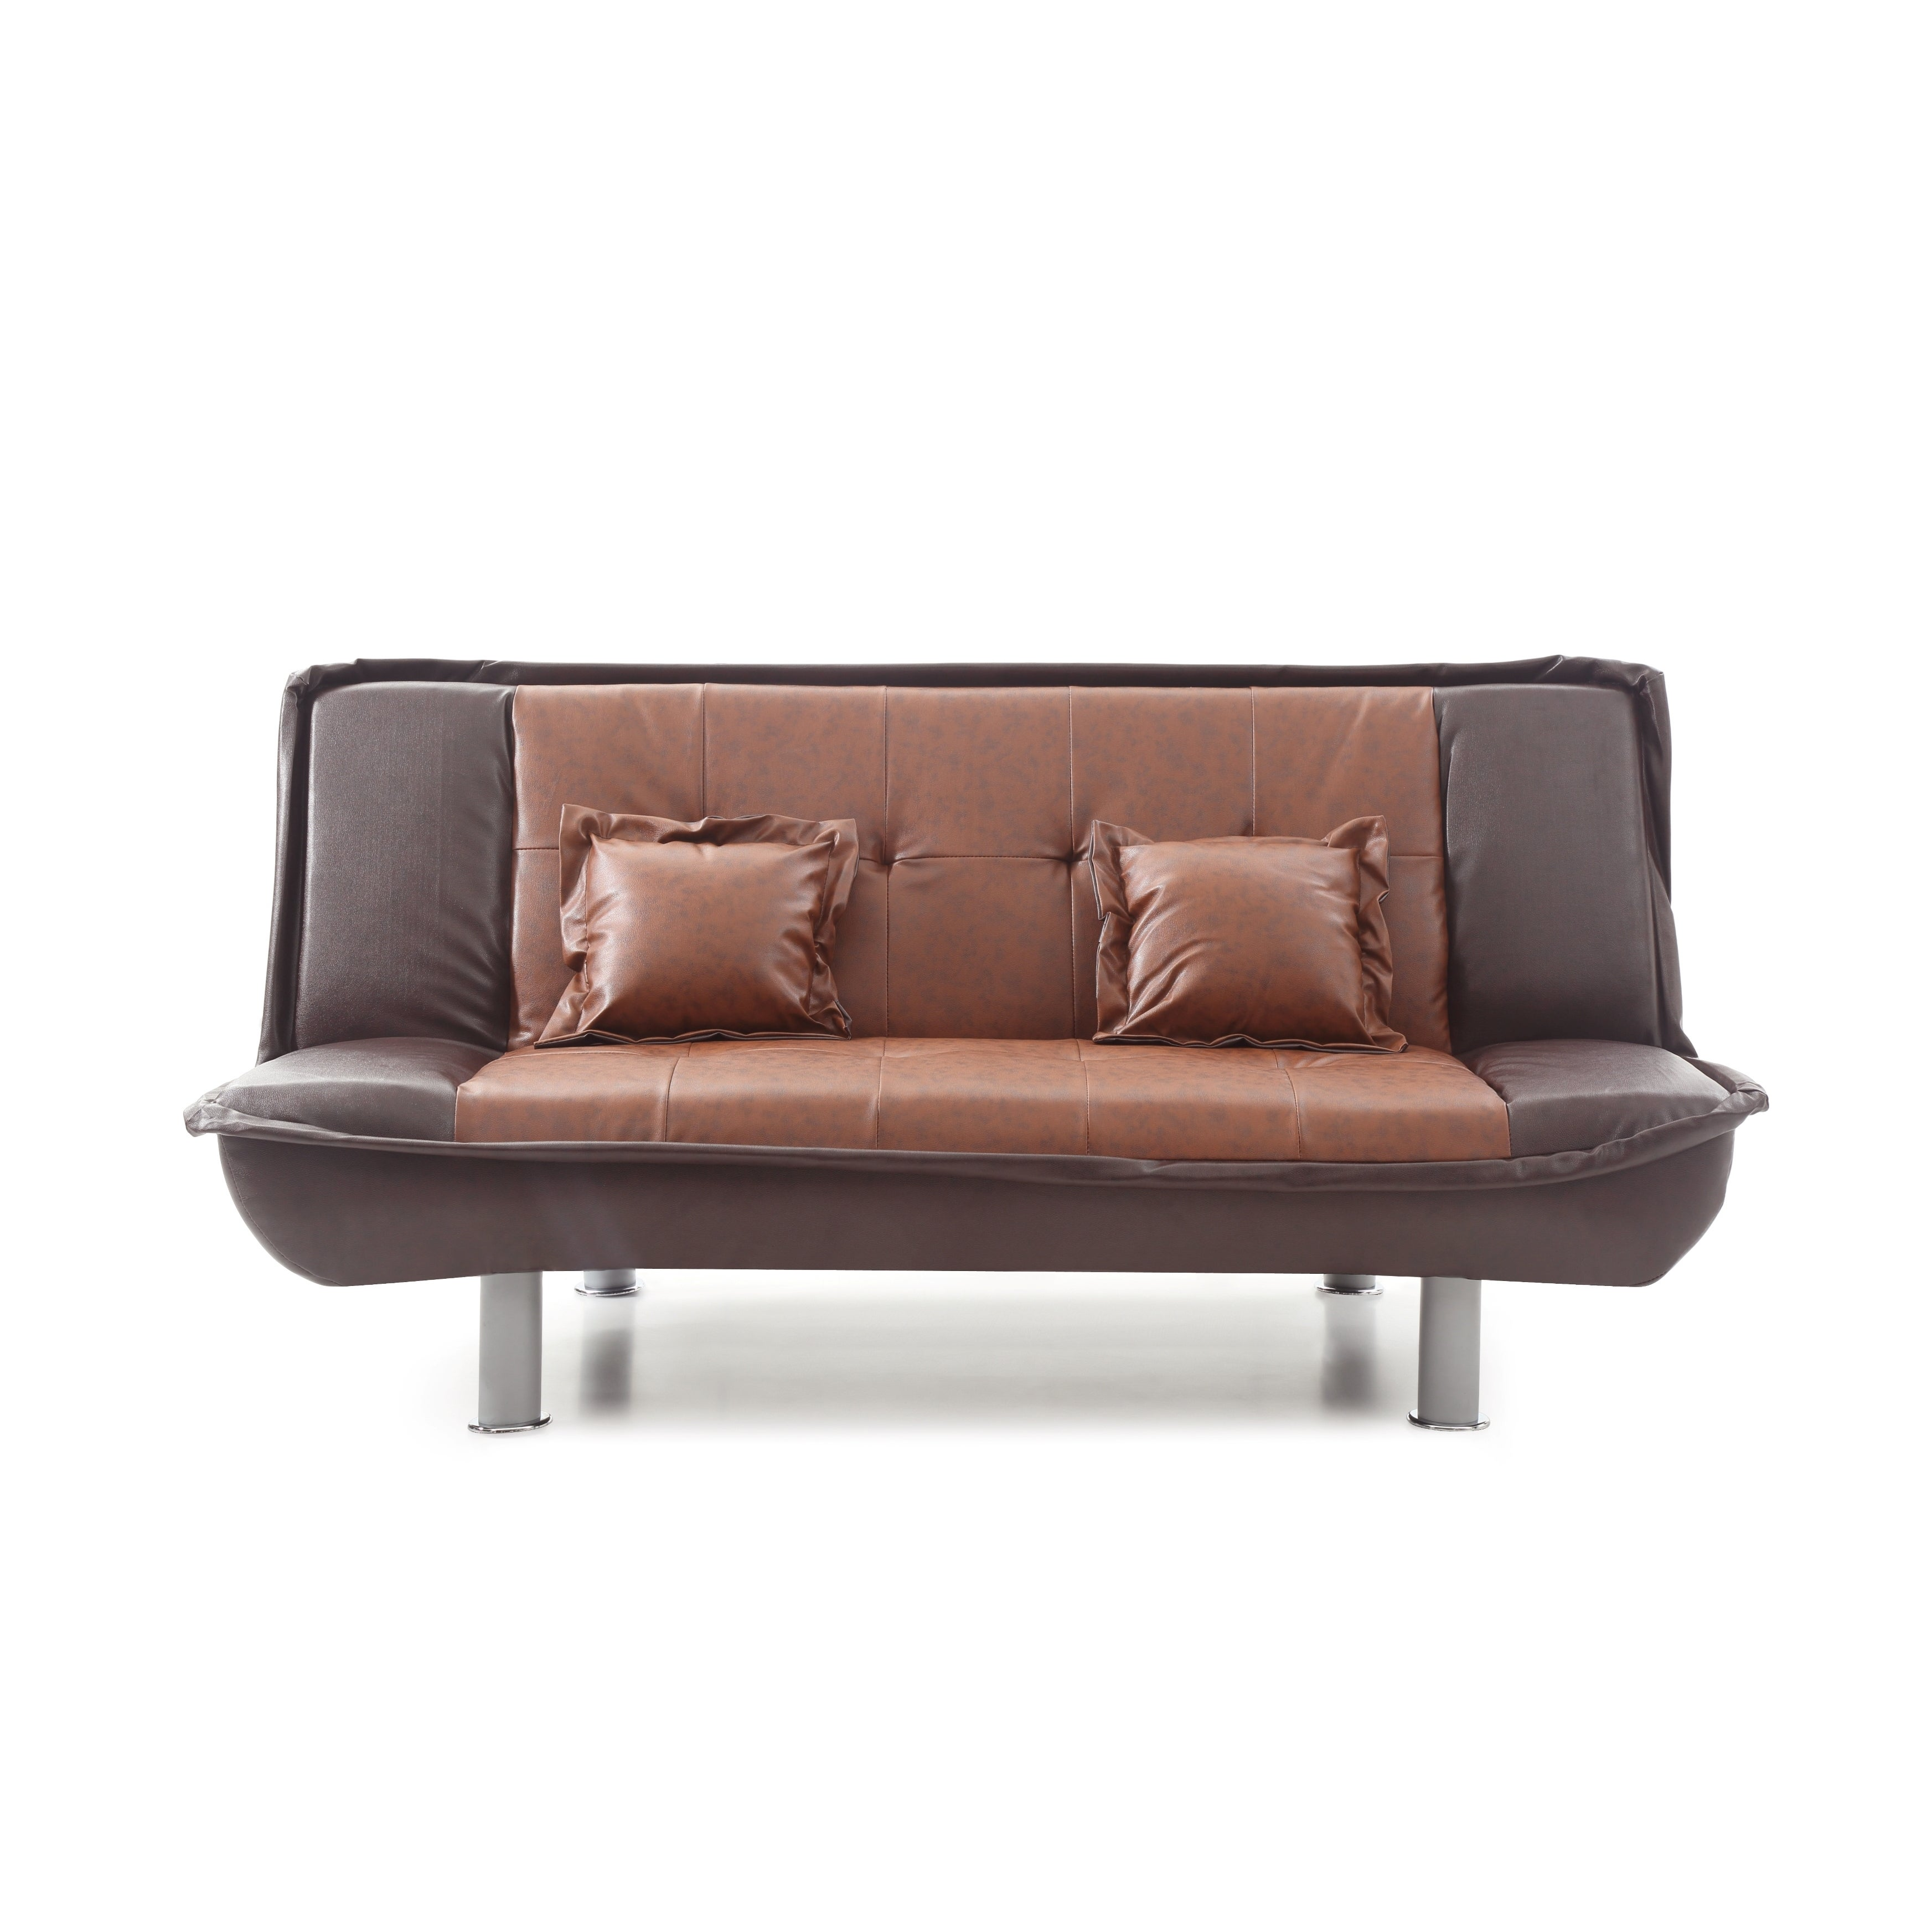 Lyke Home 2 Tone Faux Leather Sofa Bed Free Shipping Today 22361448